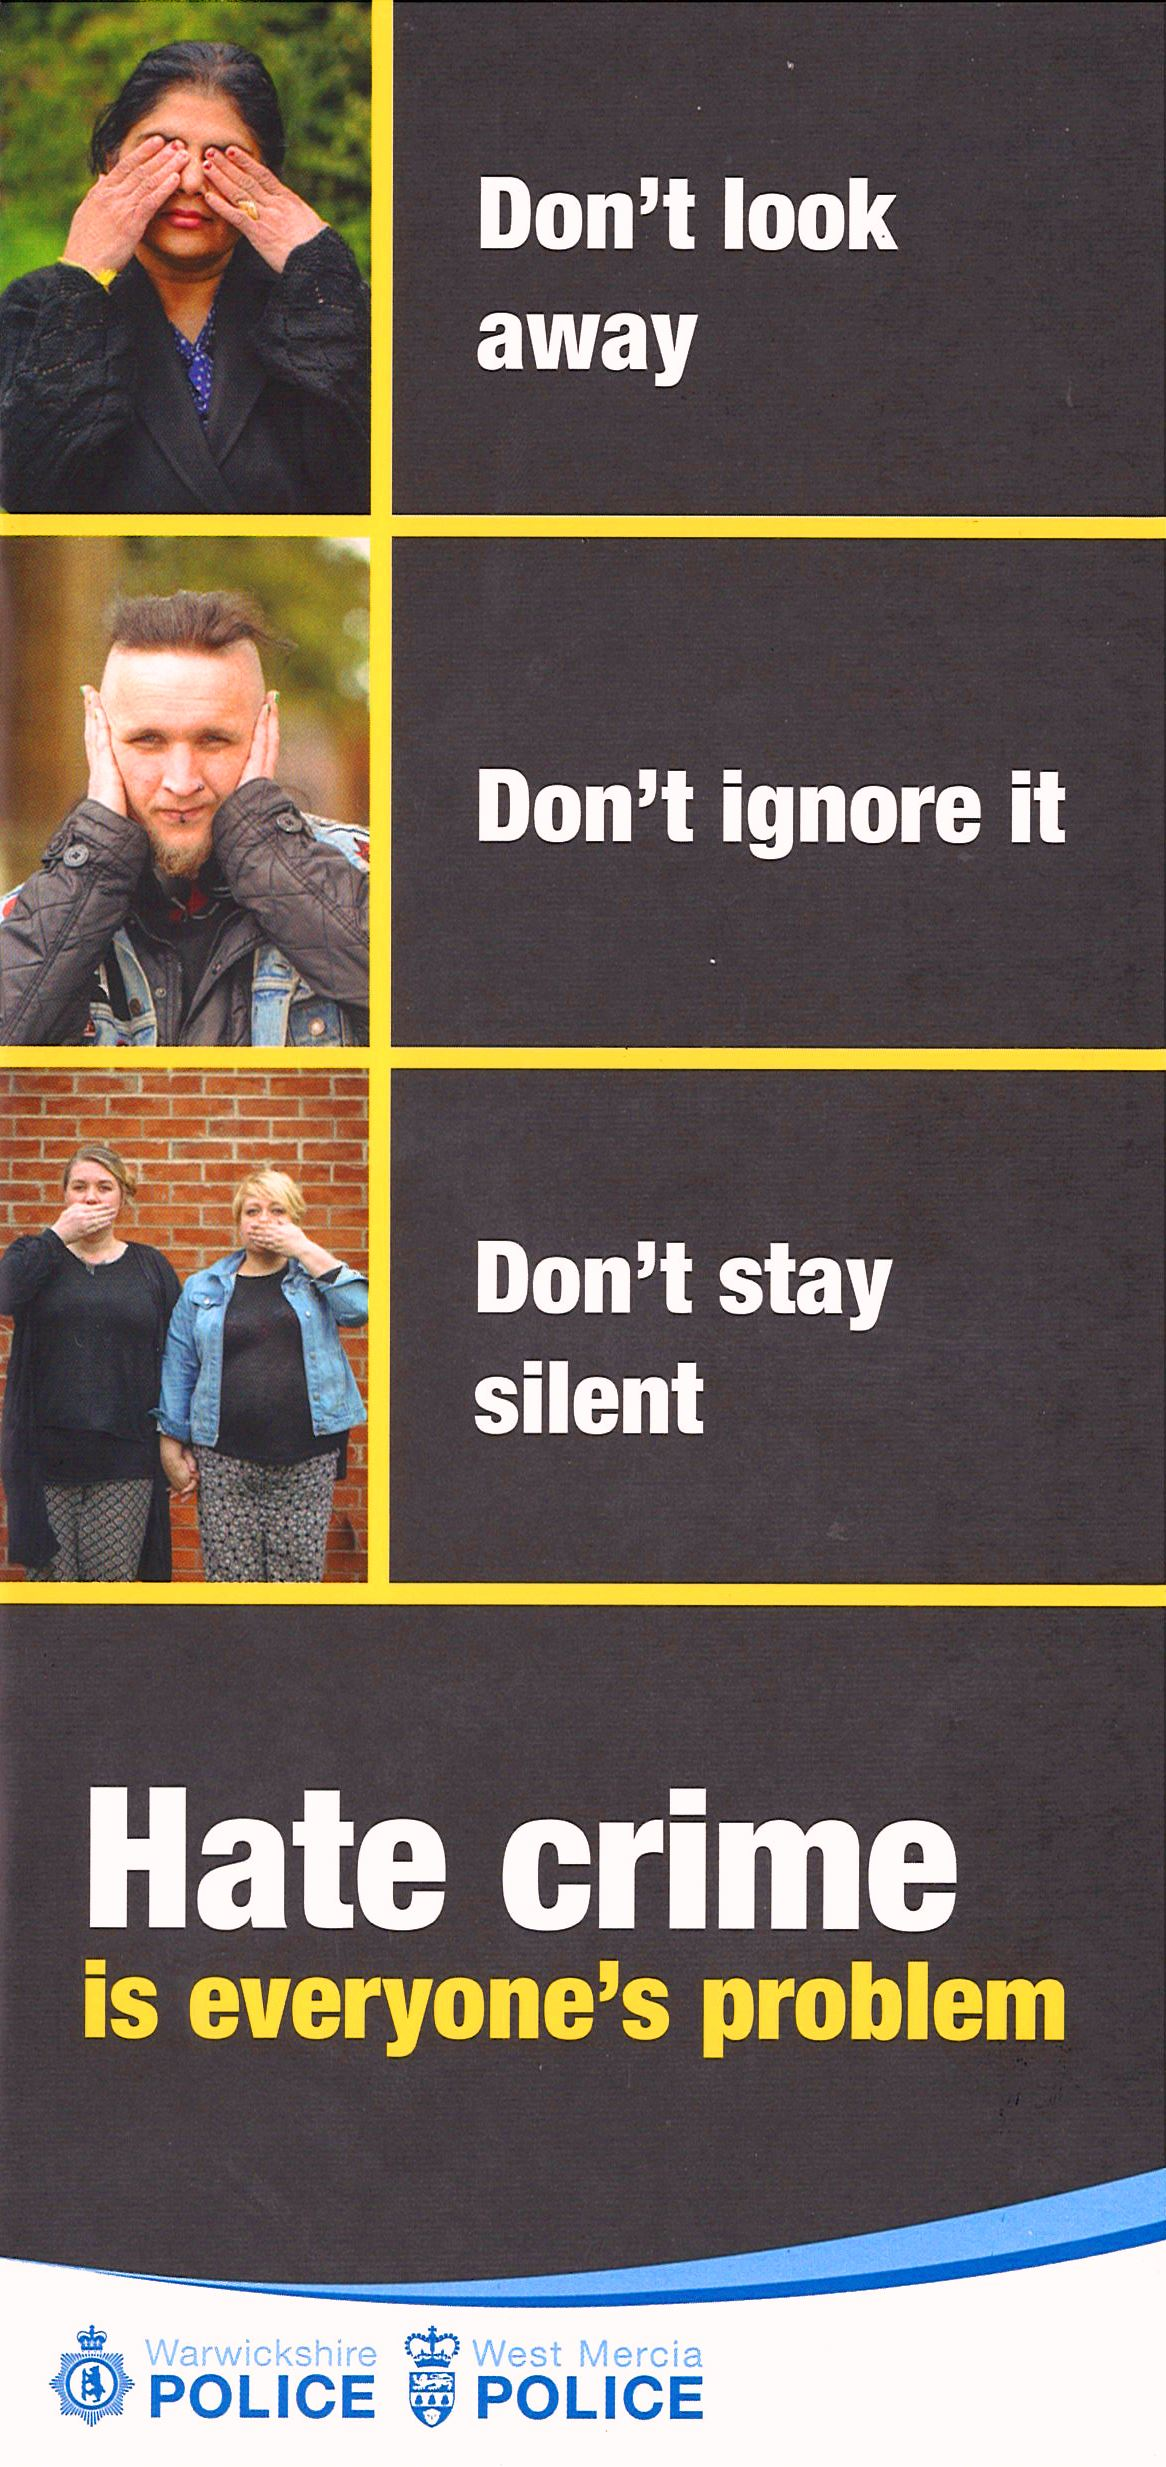 Hate crime is everyone's problem - don't look away, don't ignore it, don't stay silent